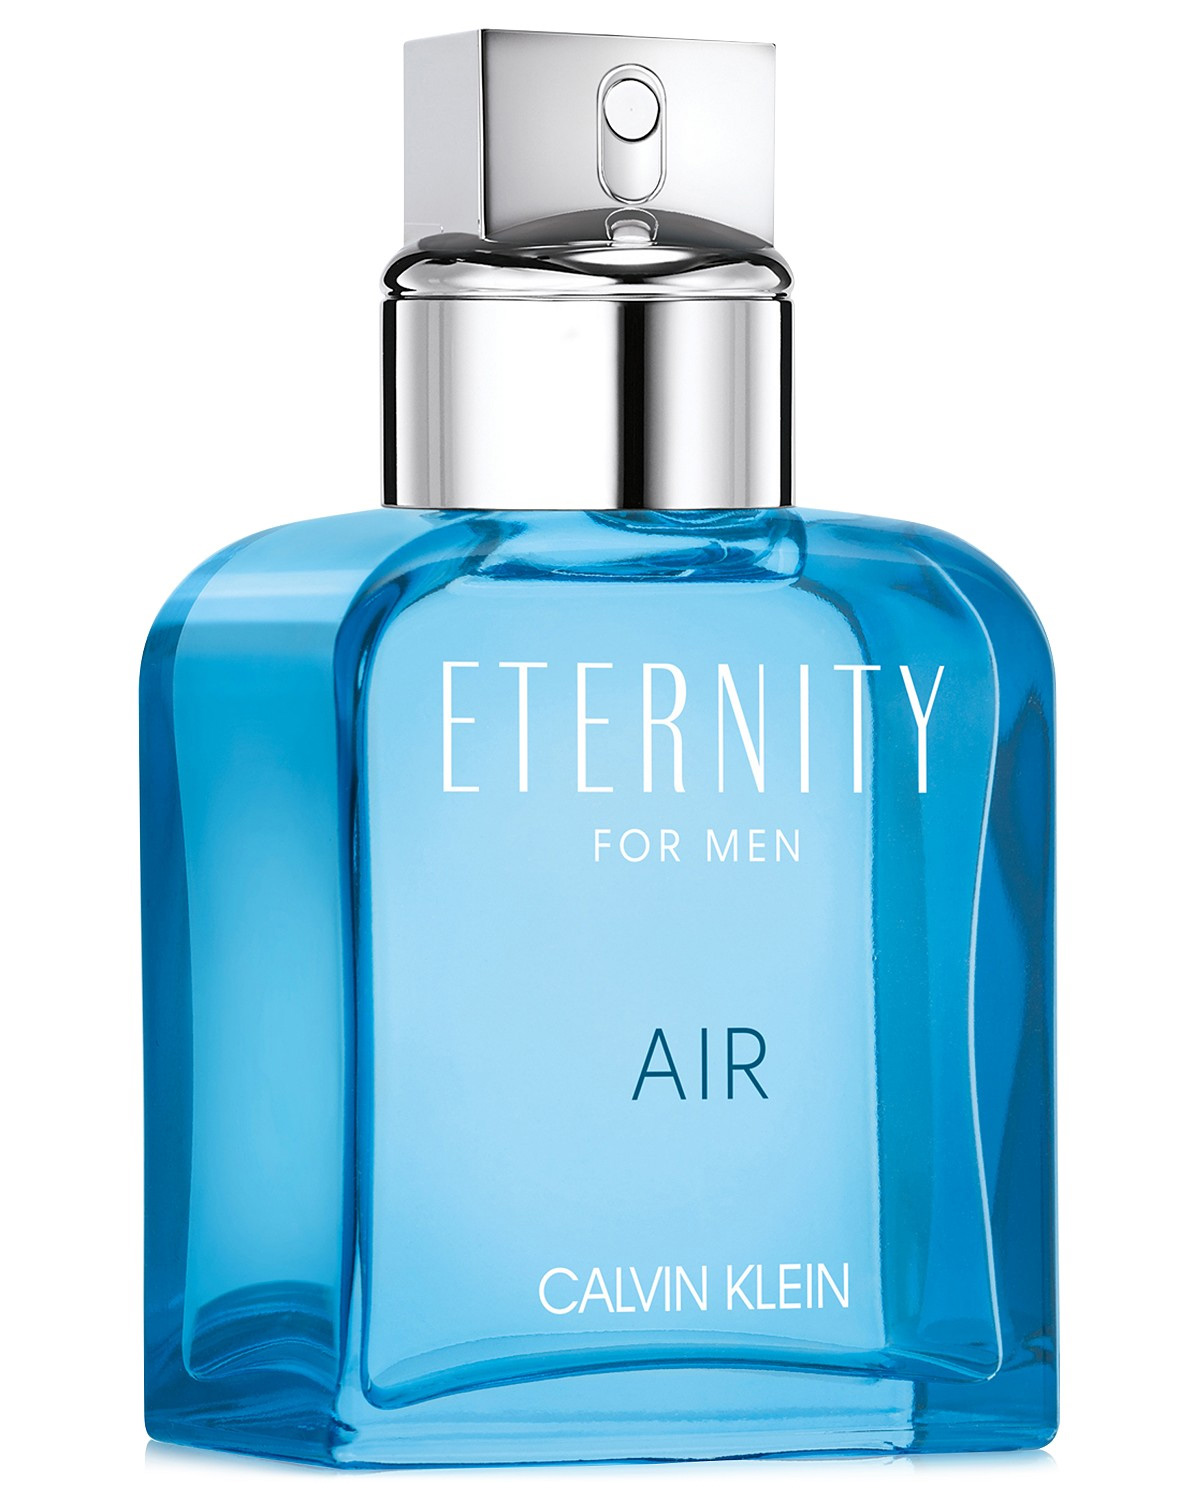 Calvin Klein Eternity Air 100ml EDT Men's Cologne